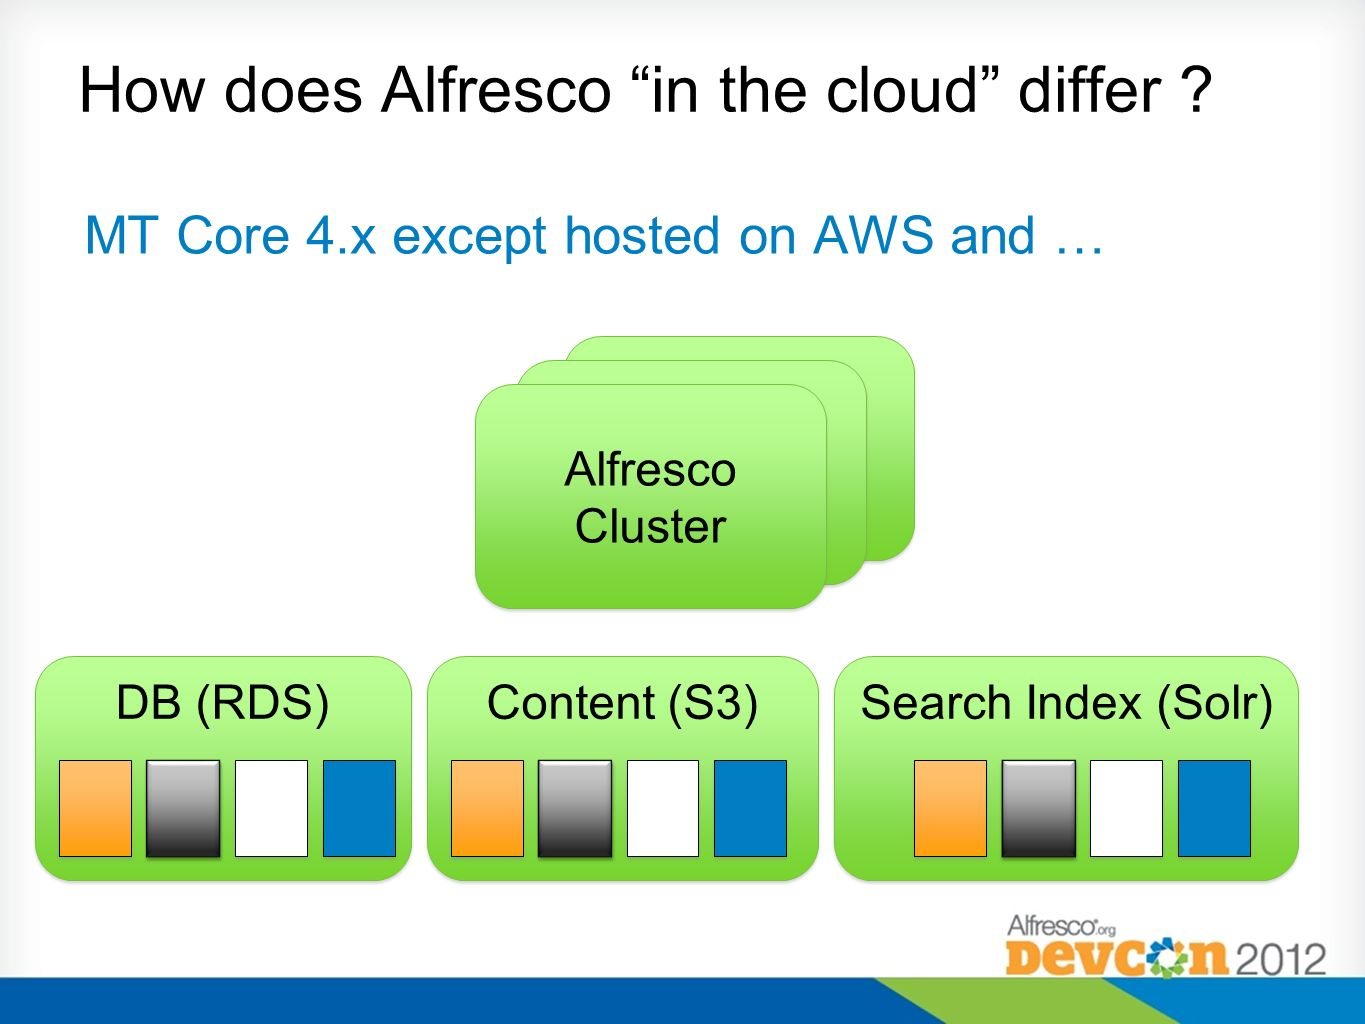 MT Core 4.x except hosted on AWS and … Search Index (Solr) DB (RDS) Content (S3) Alfresco Cluster